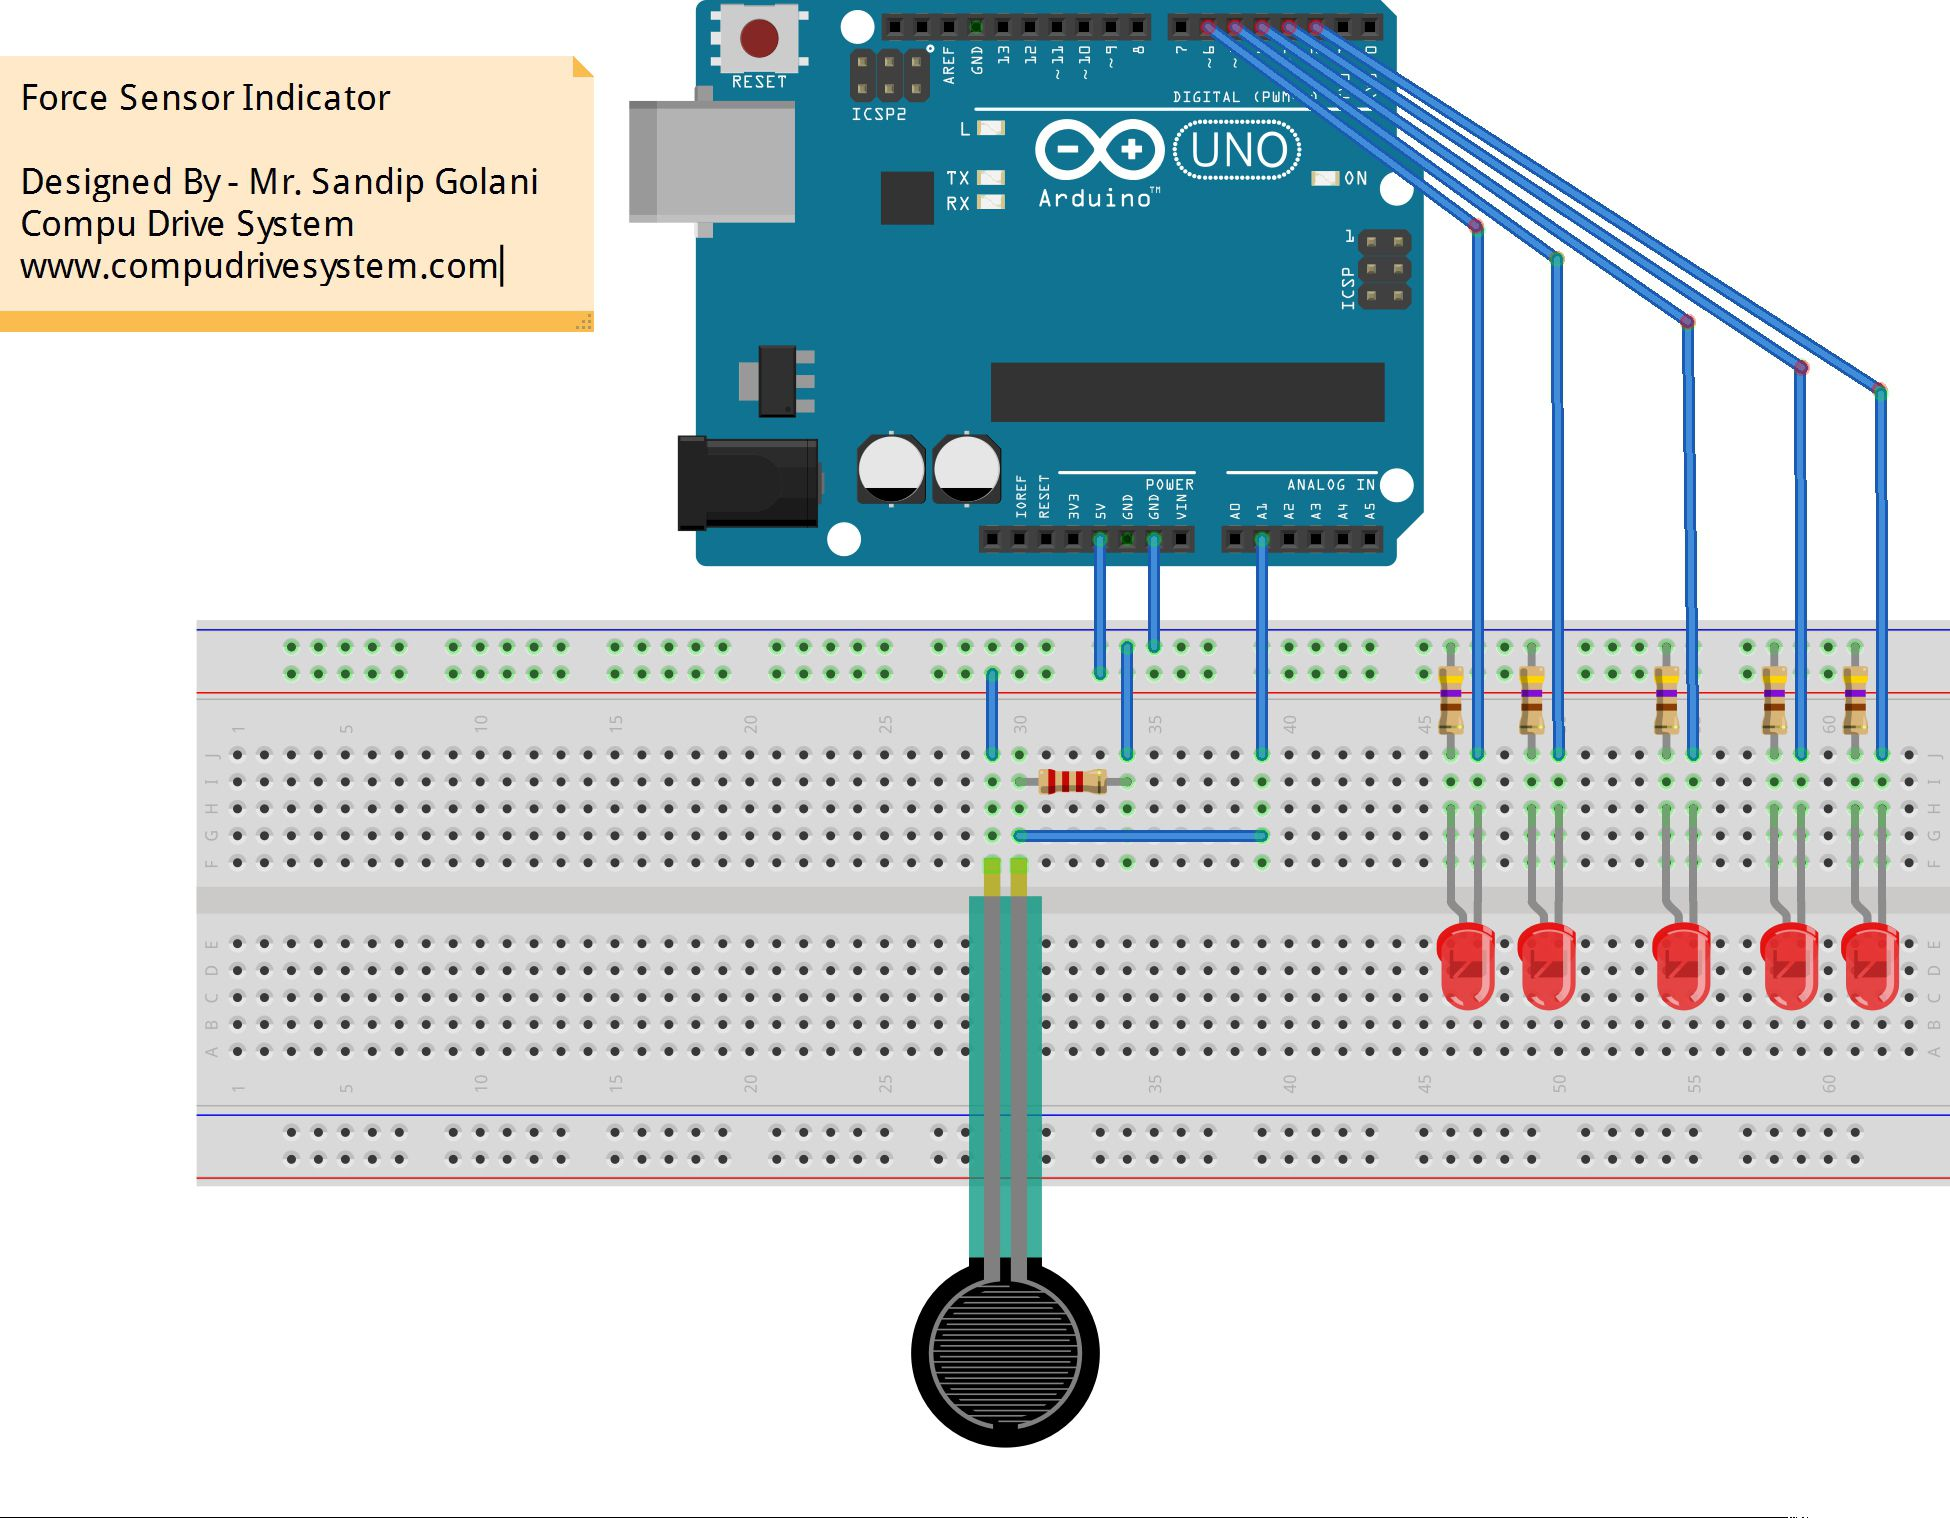 Today A Weekend Circuit On Arduino UNO Related To Force Sensing Resistor FSR The Sample Code Will Be Given My Website Compudrivesystem